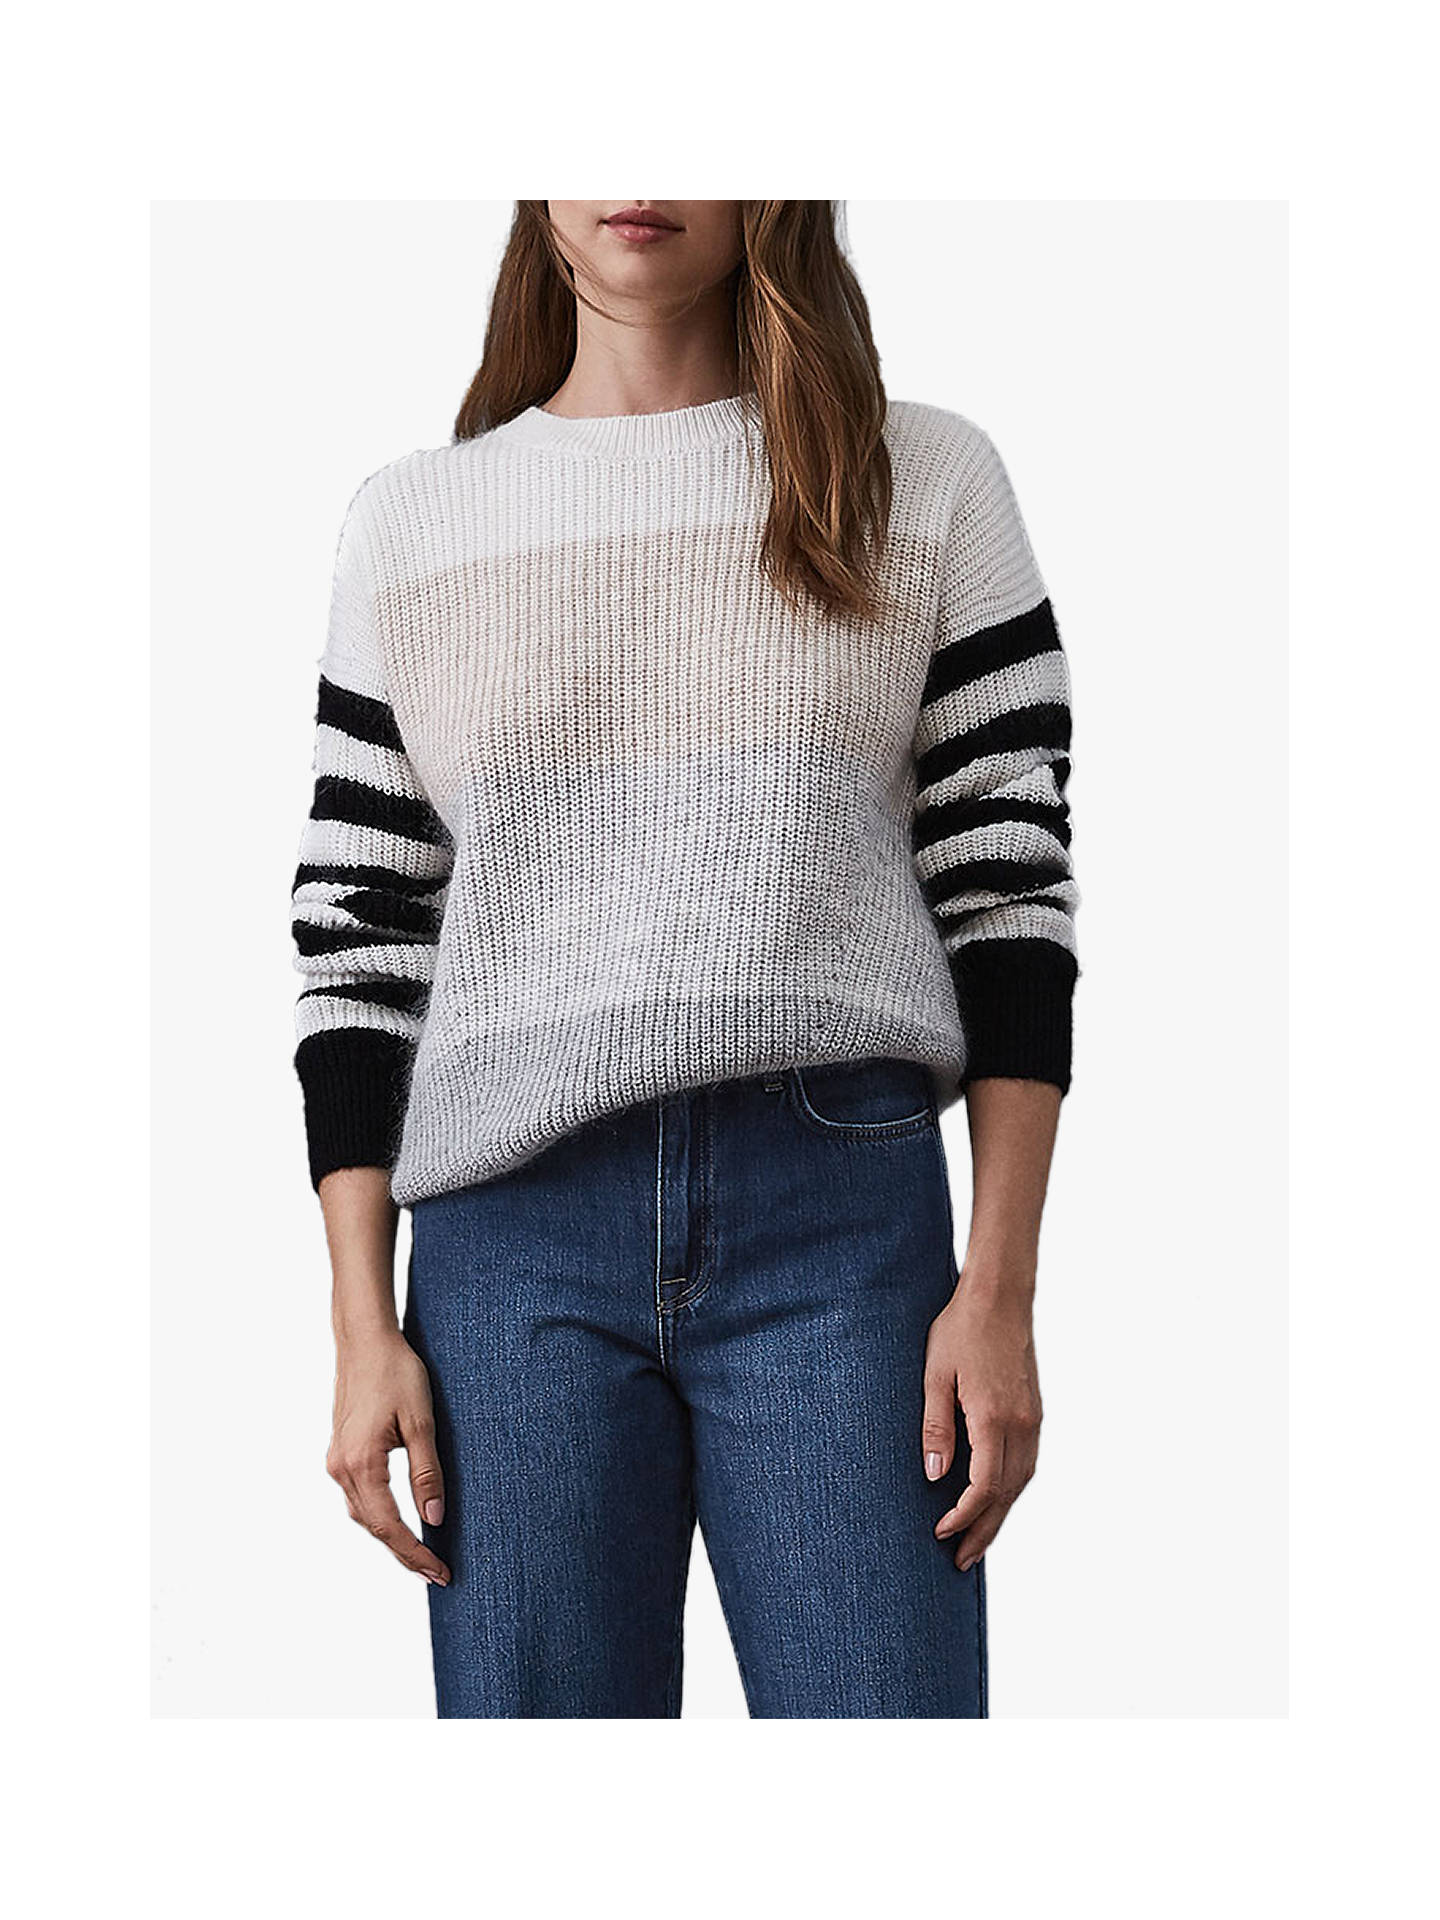 BuyReiss Haidee Stripe Cardigan, Multi, XS Online at johnlewis.com